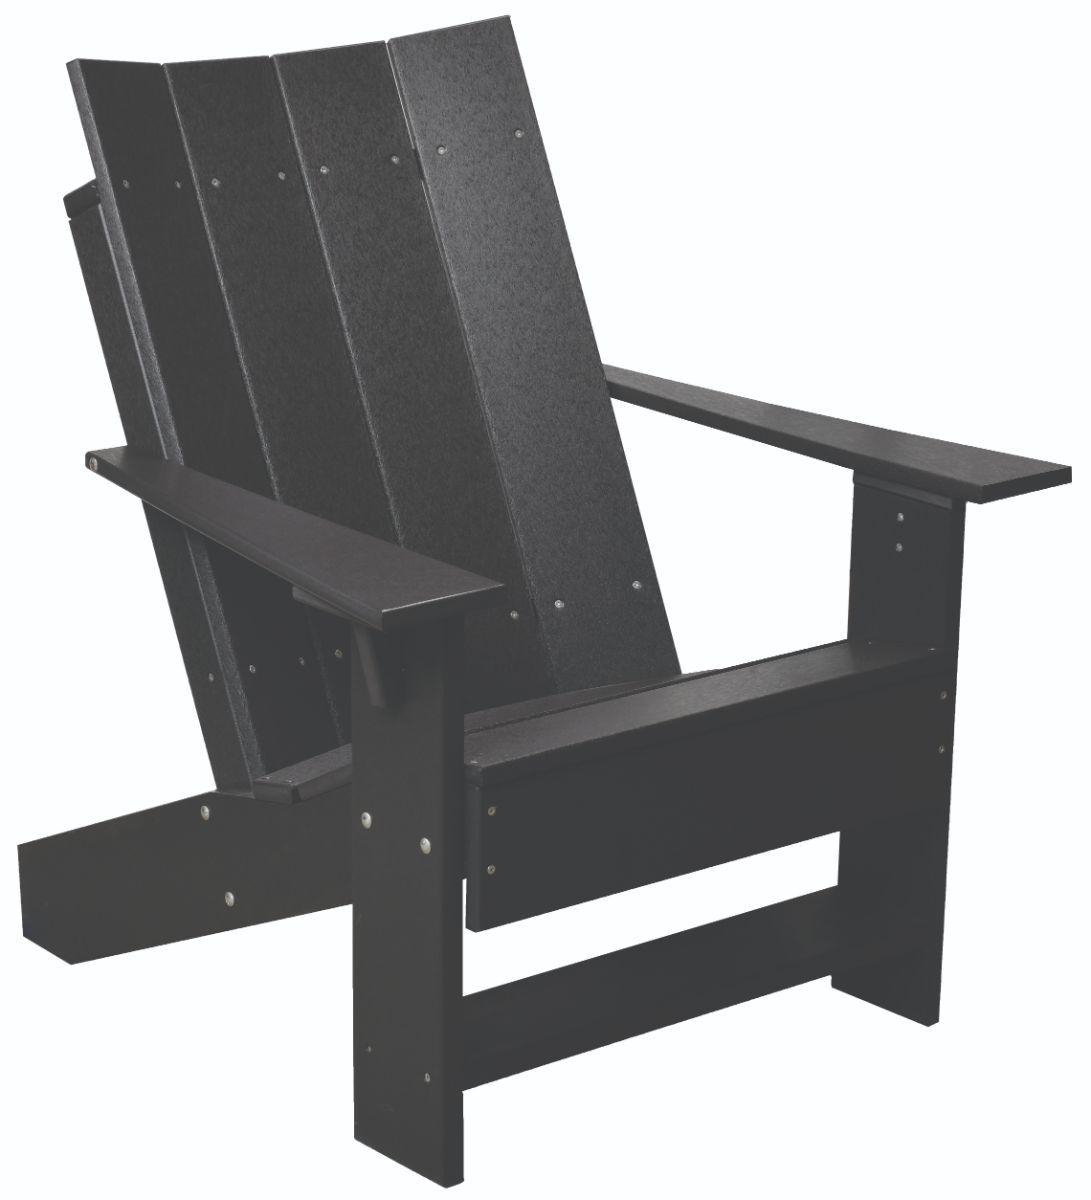 Black Mindelo Adirondack Chair